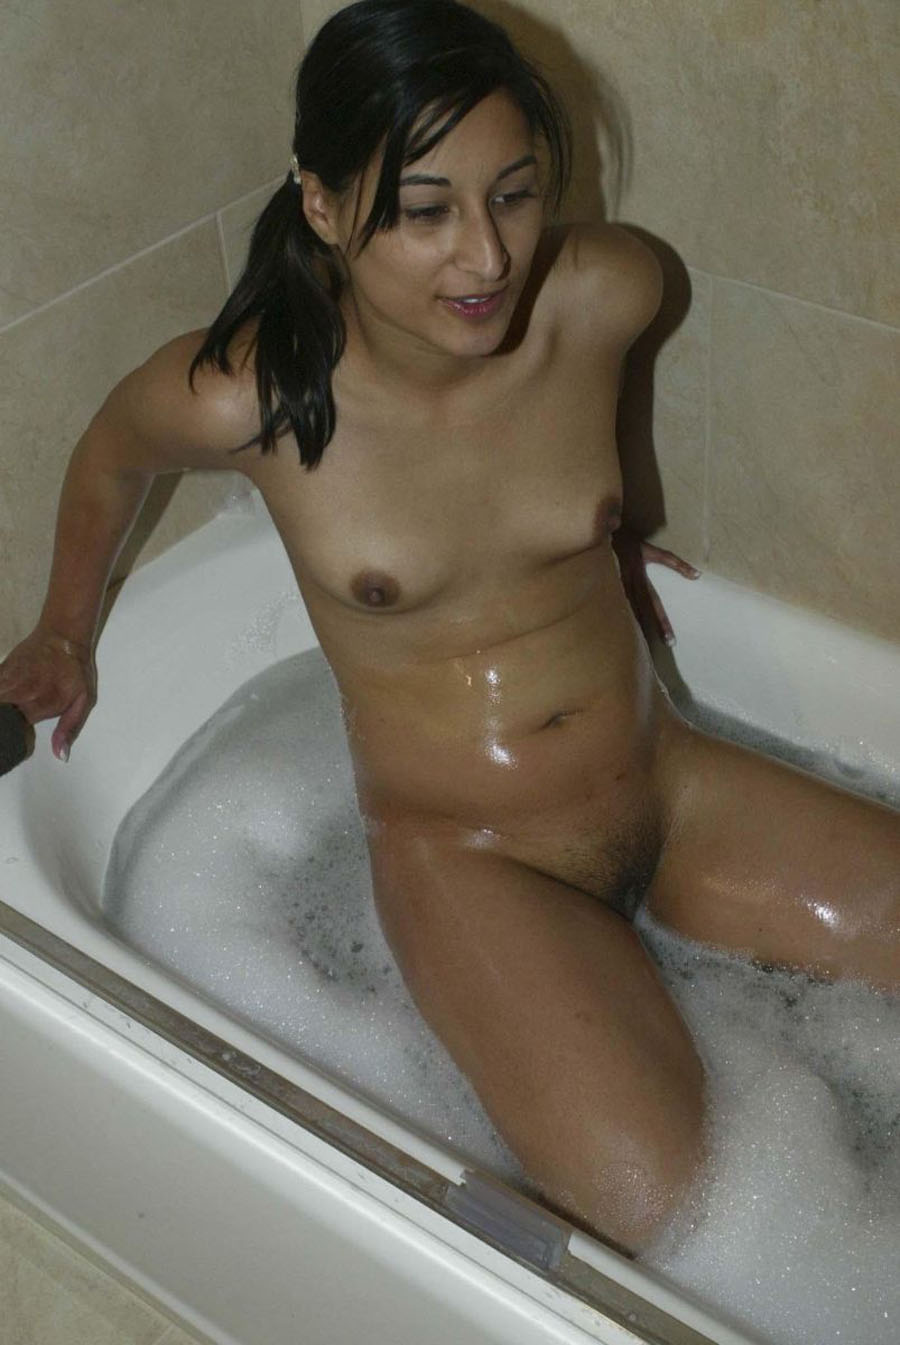 Desi Aunty Bhabhi Ki Nude Bathing Photo - Best Indian -5290